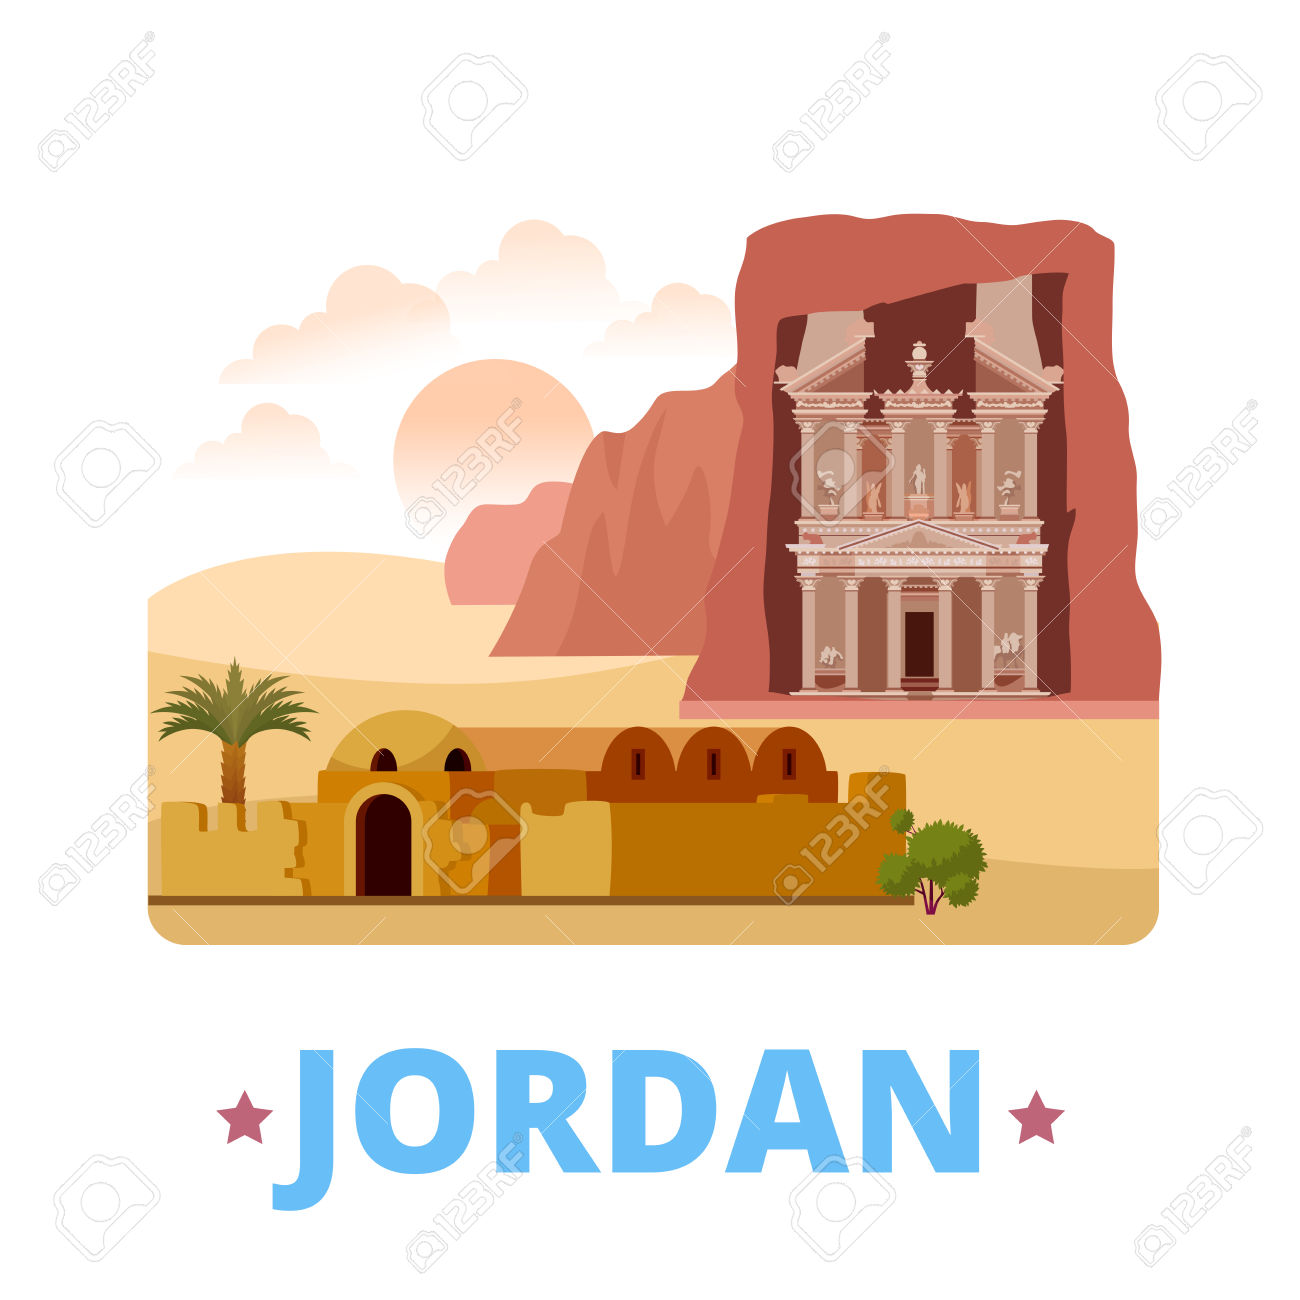 Jordan Country Fridge Magnet Design Template. Flat Cartoon Style.